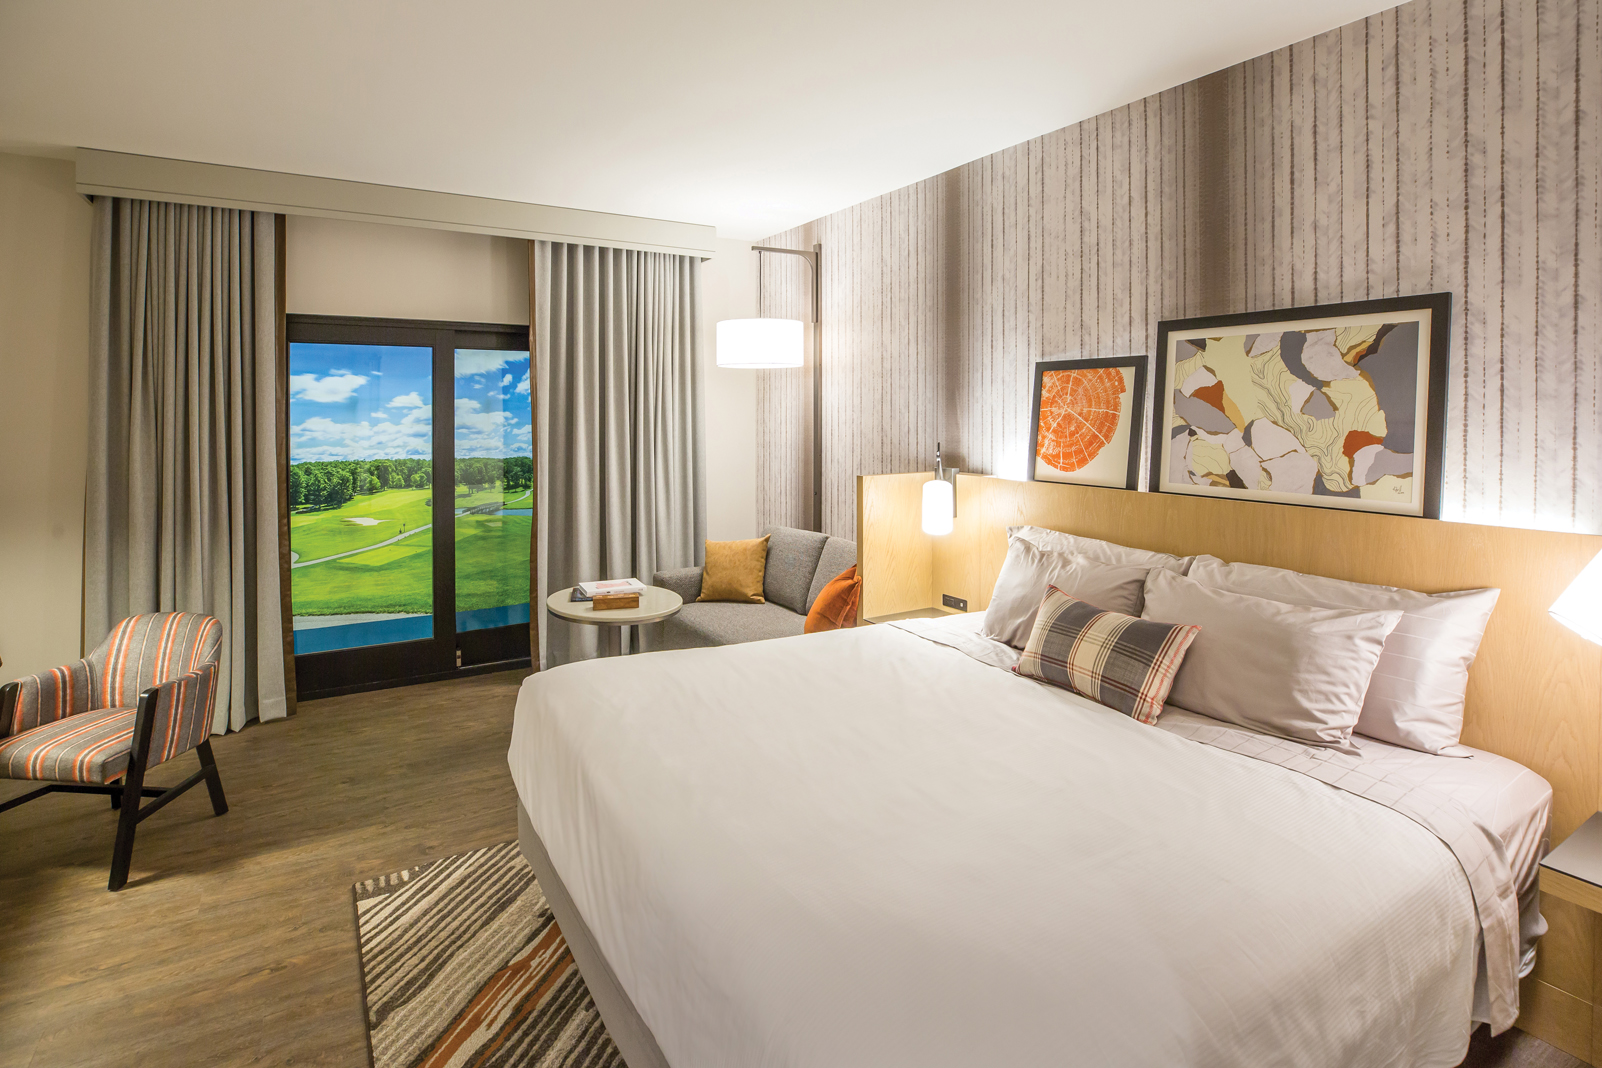 Rooms boast boutique hotel comforts—walking distance from Gull Lake